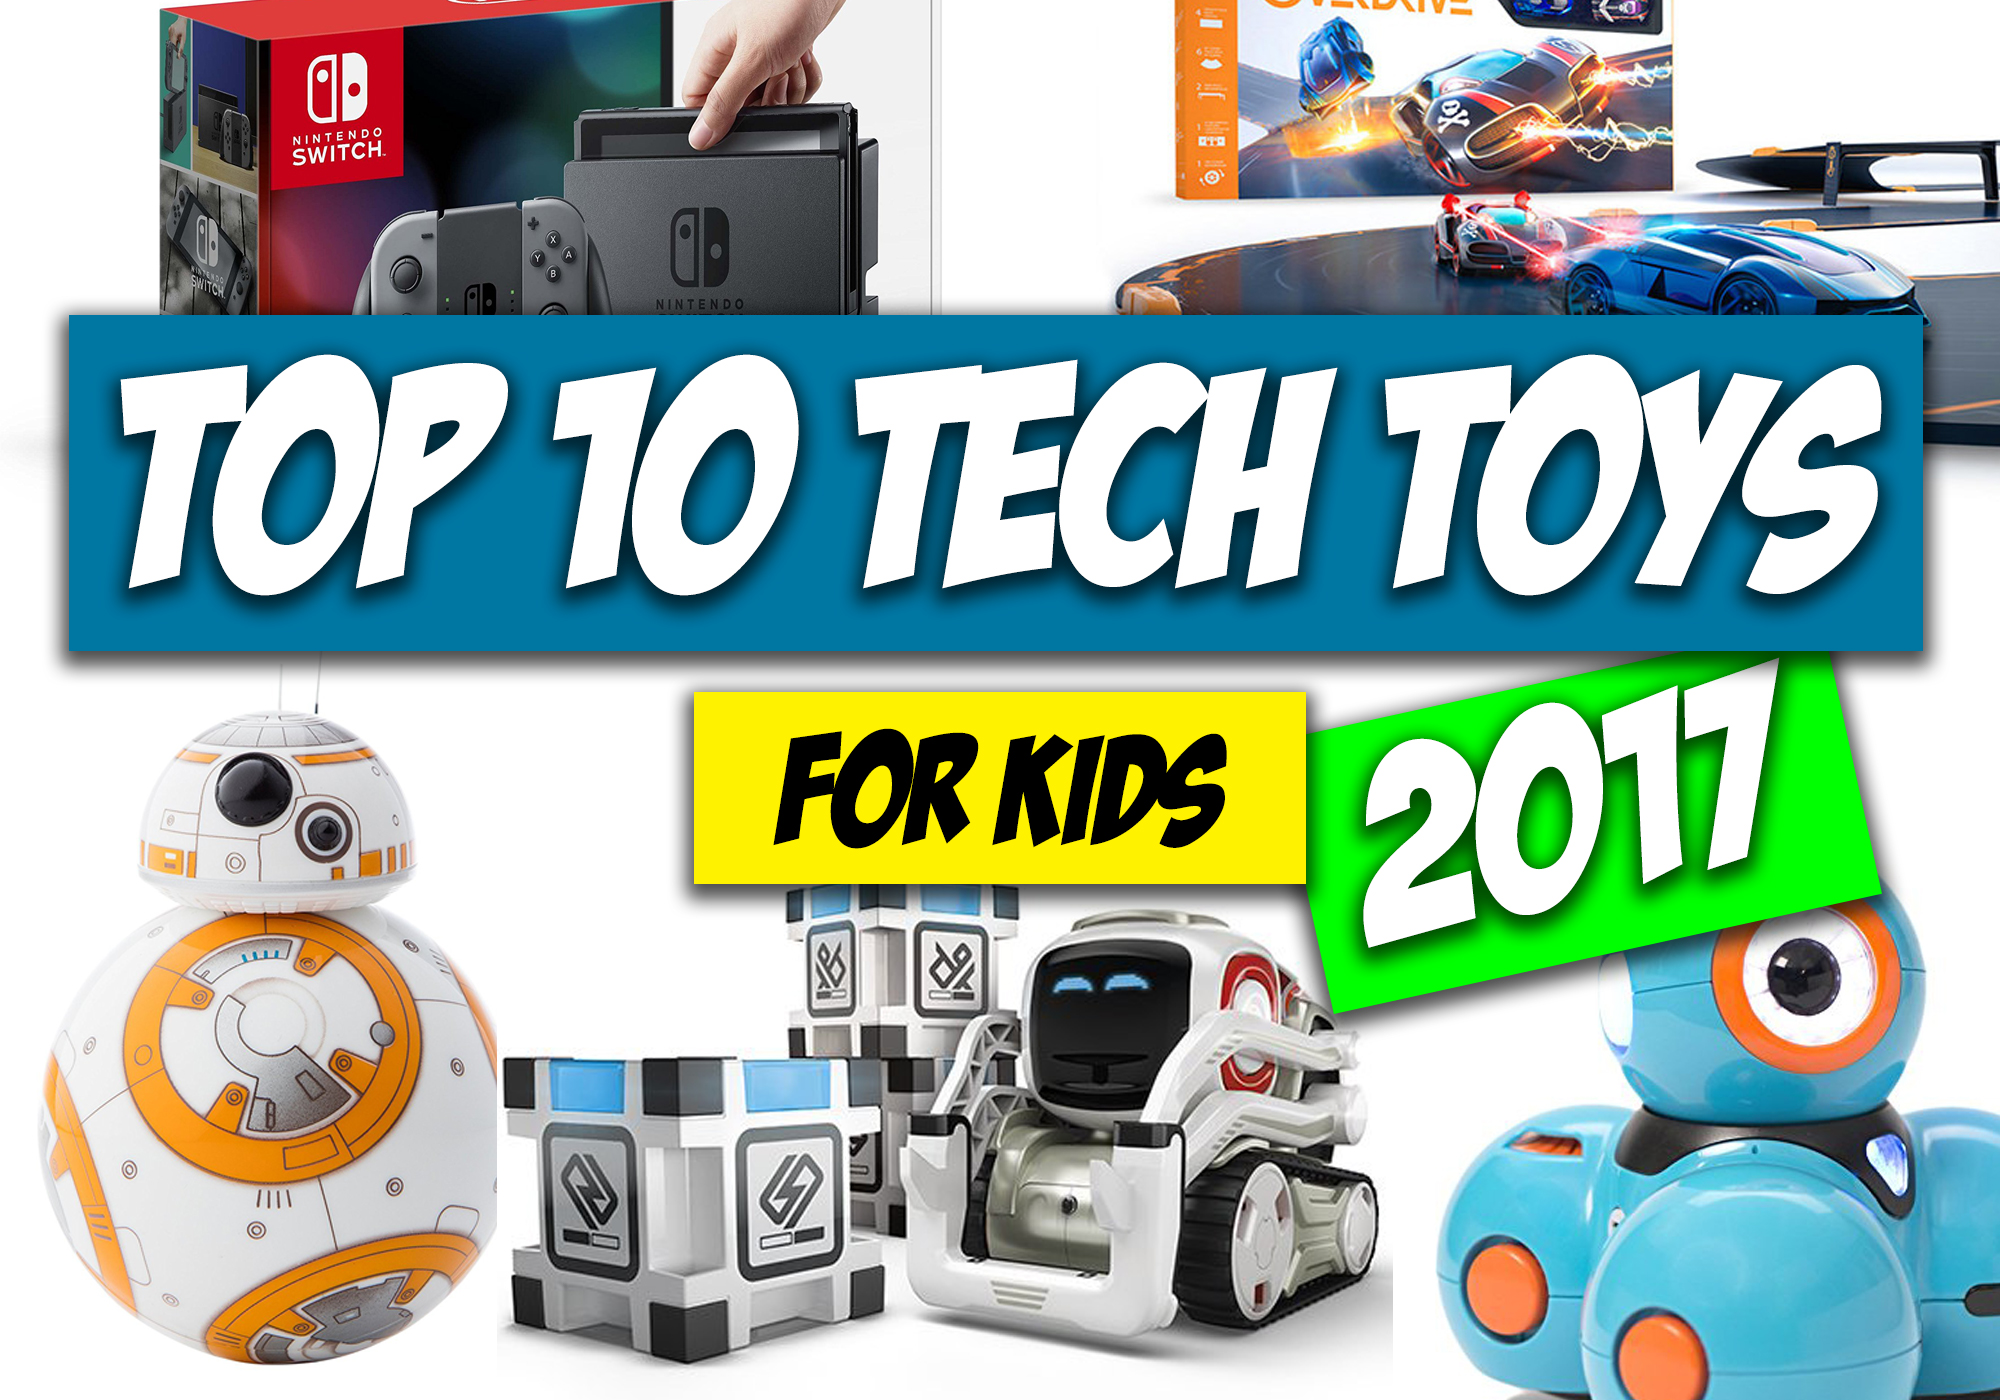 Top ten christmas gifts for tweens